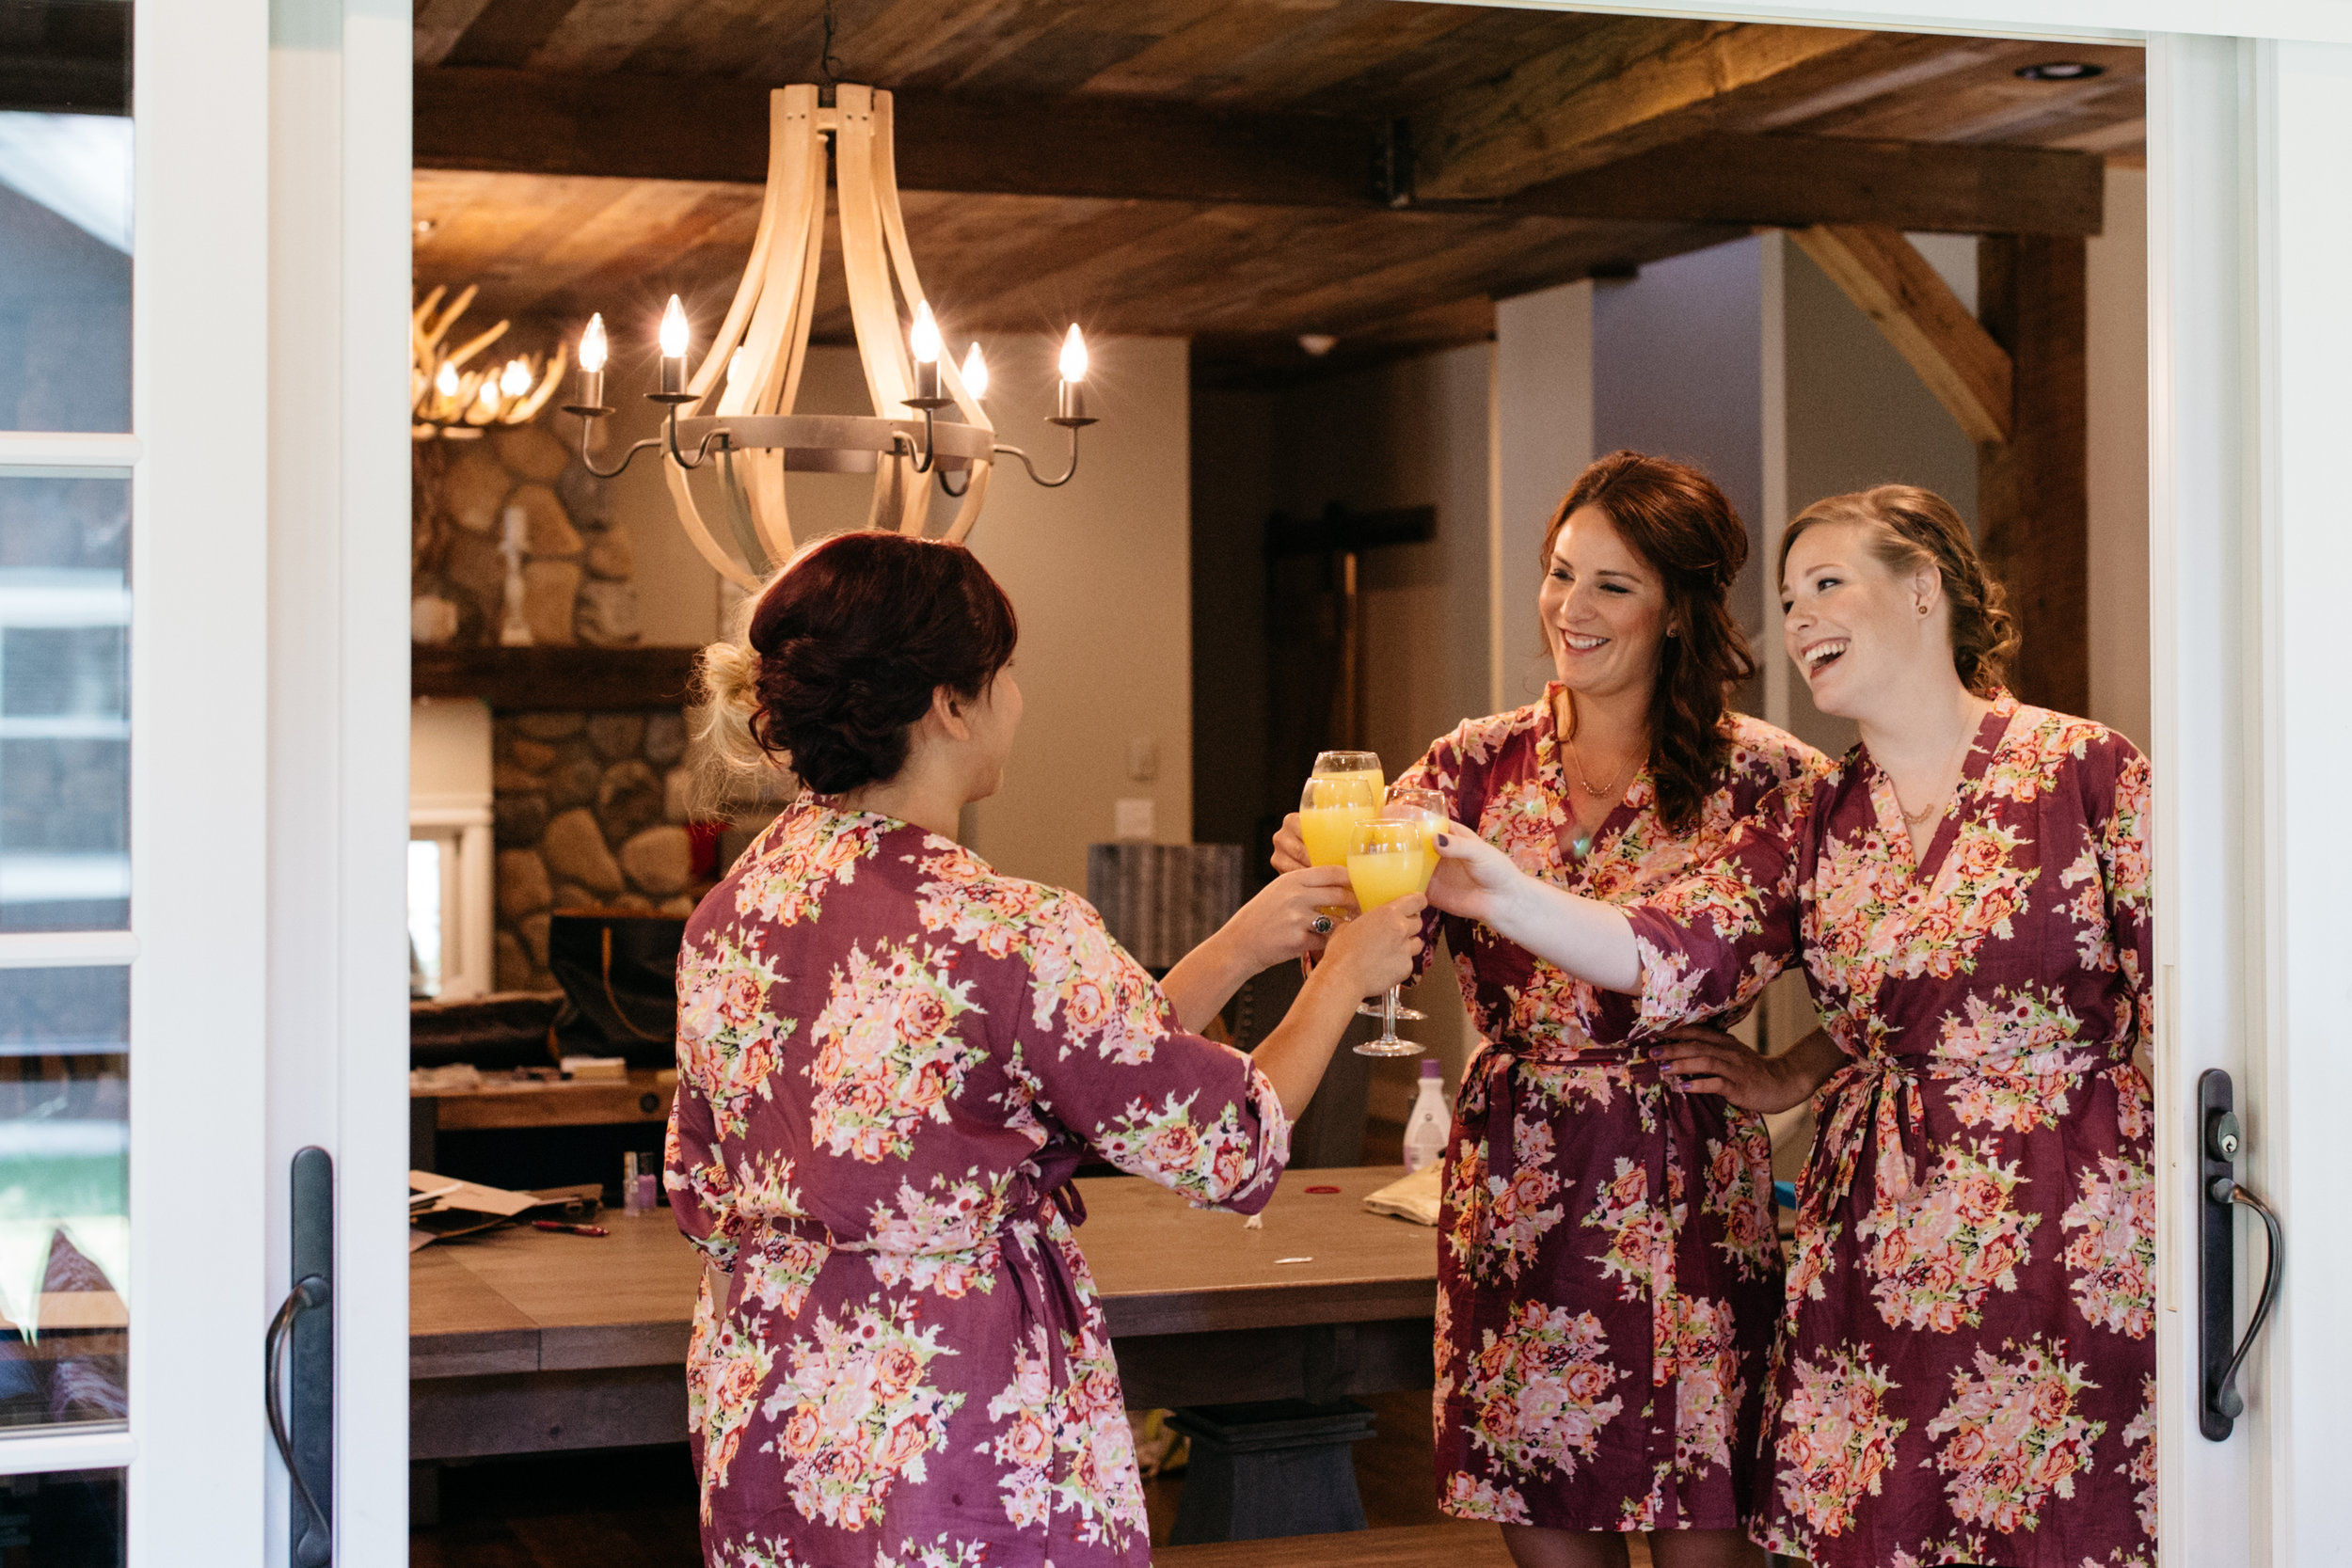 Bridesmaids wearing floral print robes drinking mimosas in northern Minnesota cabin on Gull Lake. Wedding photography by Britt DeZeeuw, Grand View Lodge wedding photographer.